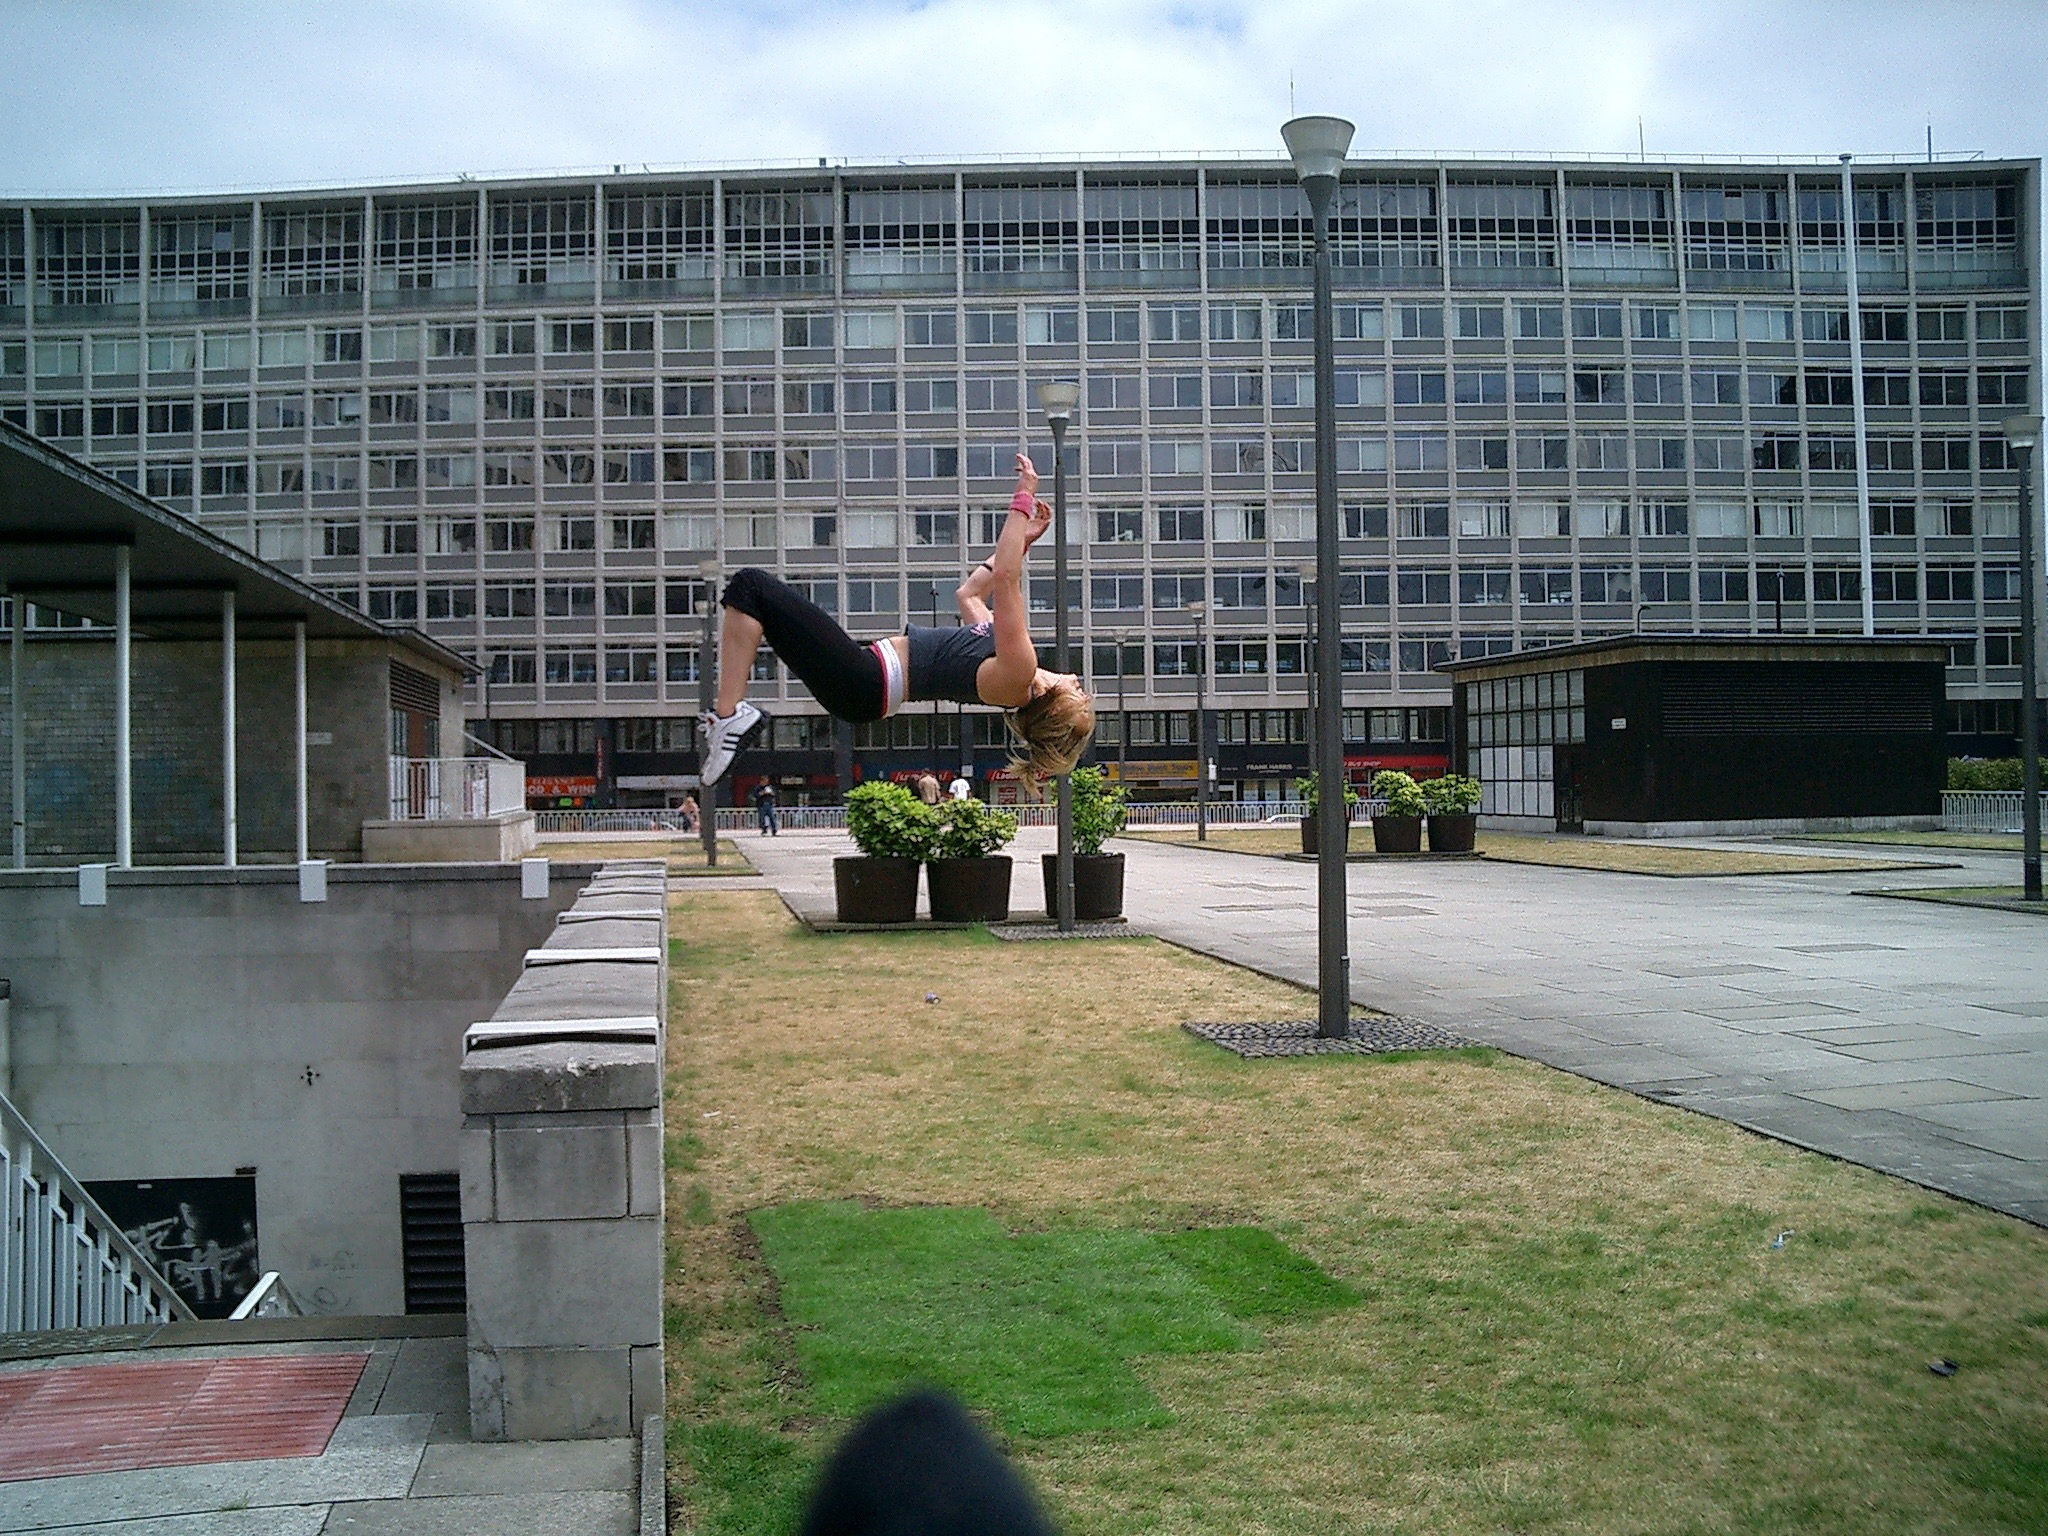 Me and my parkour flats